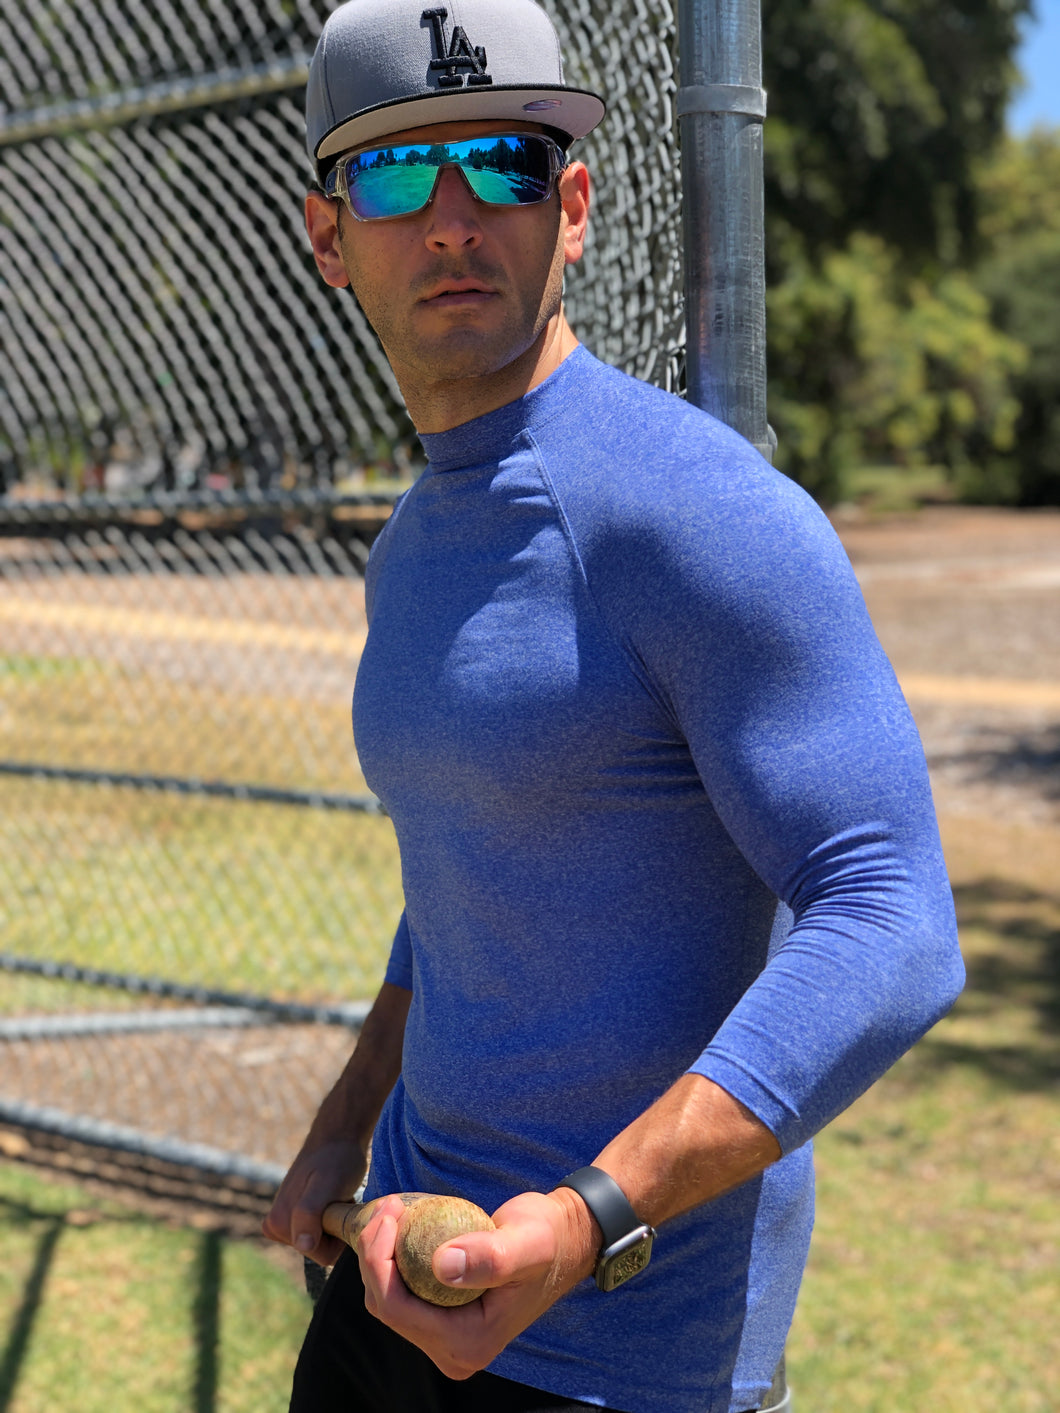 Juiced 3/4 Baseball Tee - Heathered Blue